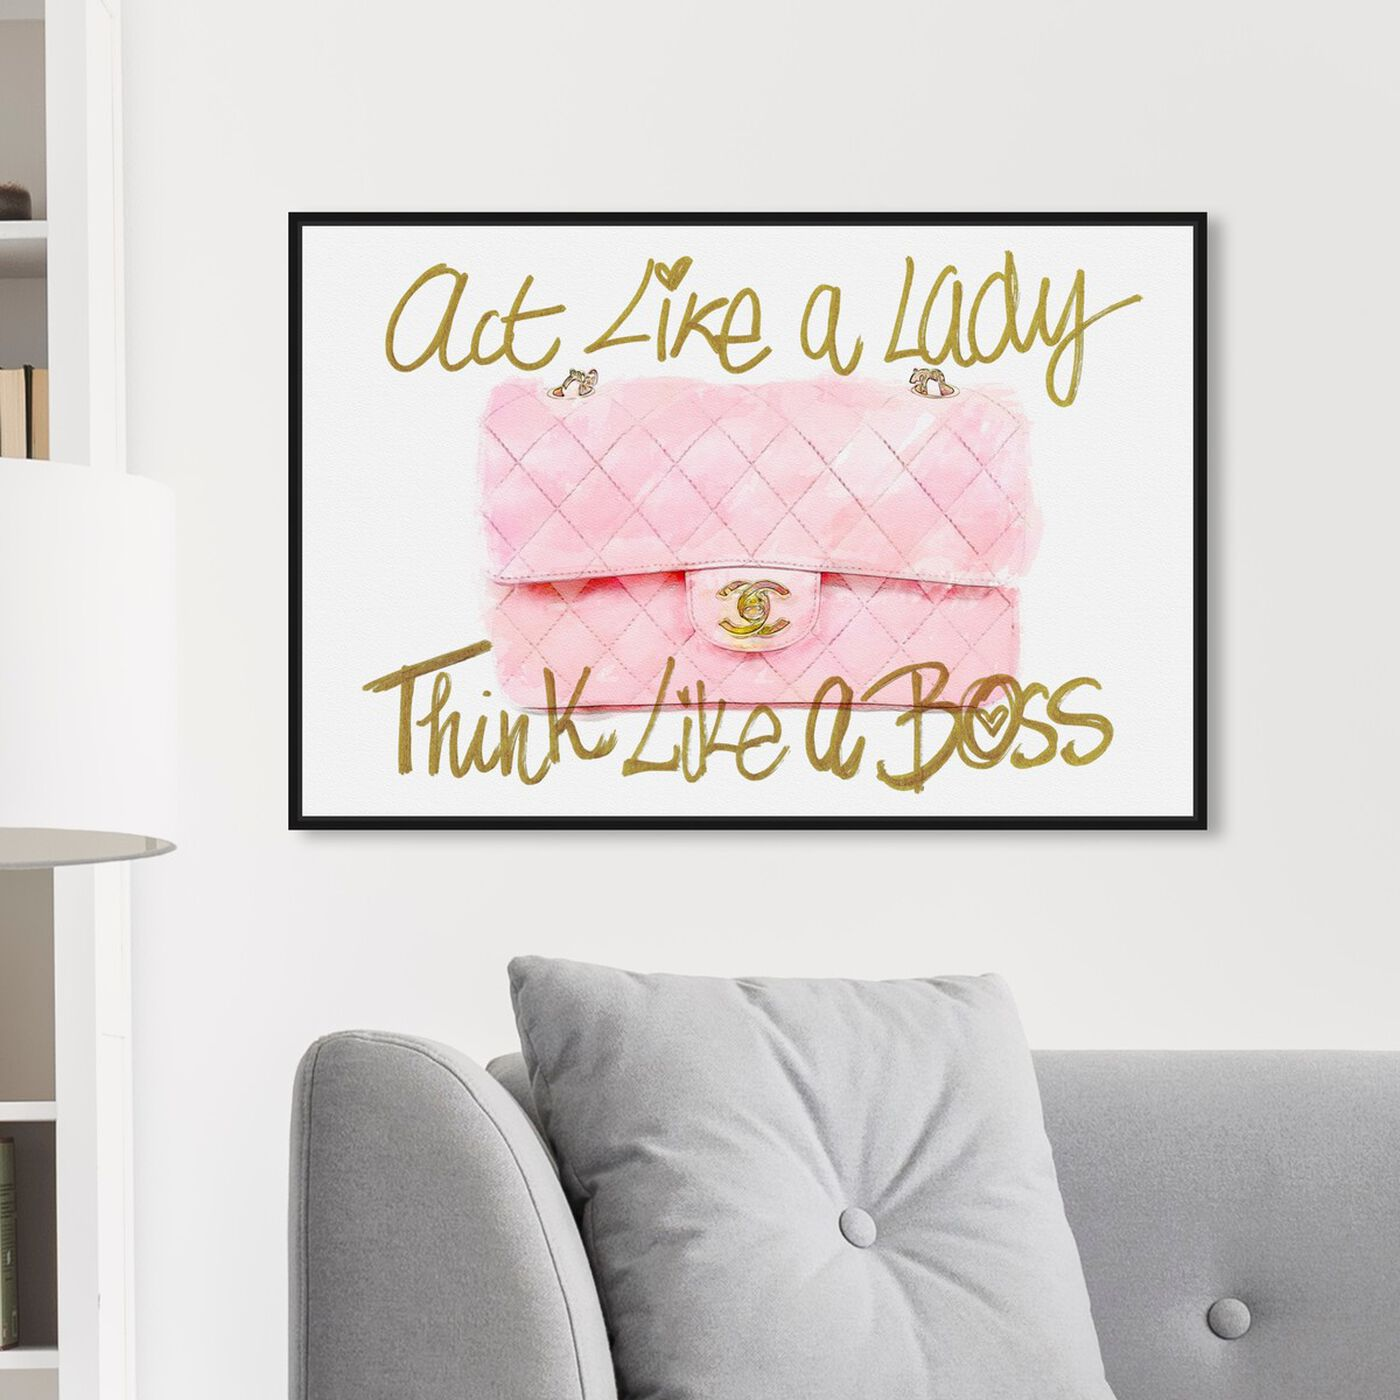 Hanging view of Like A Lady Boss featuring typography and quotes and empowered women quotes and sayings art.